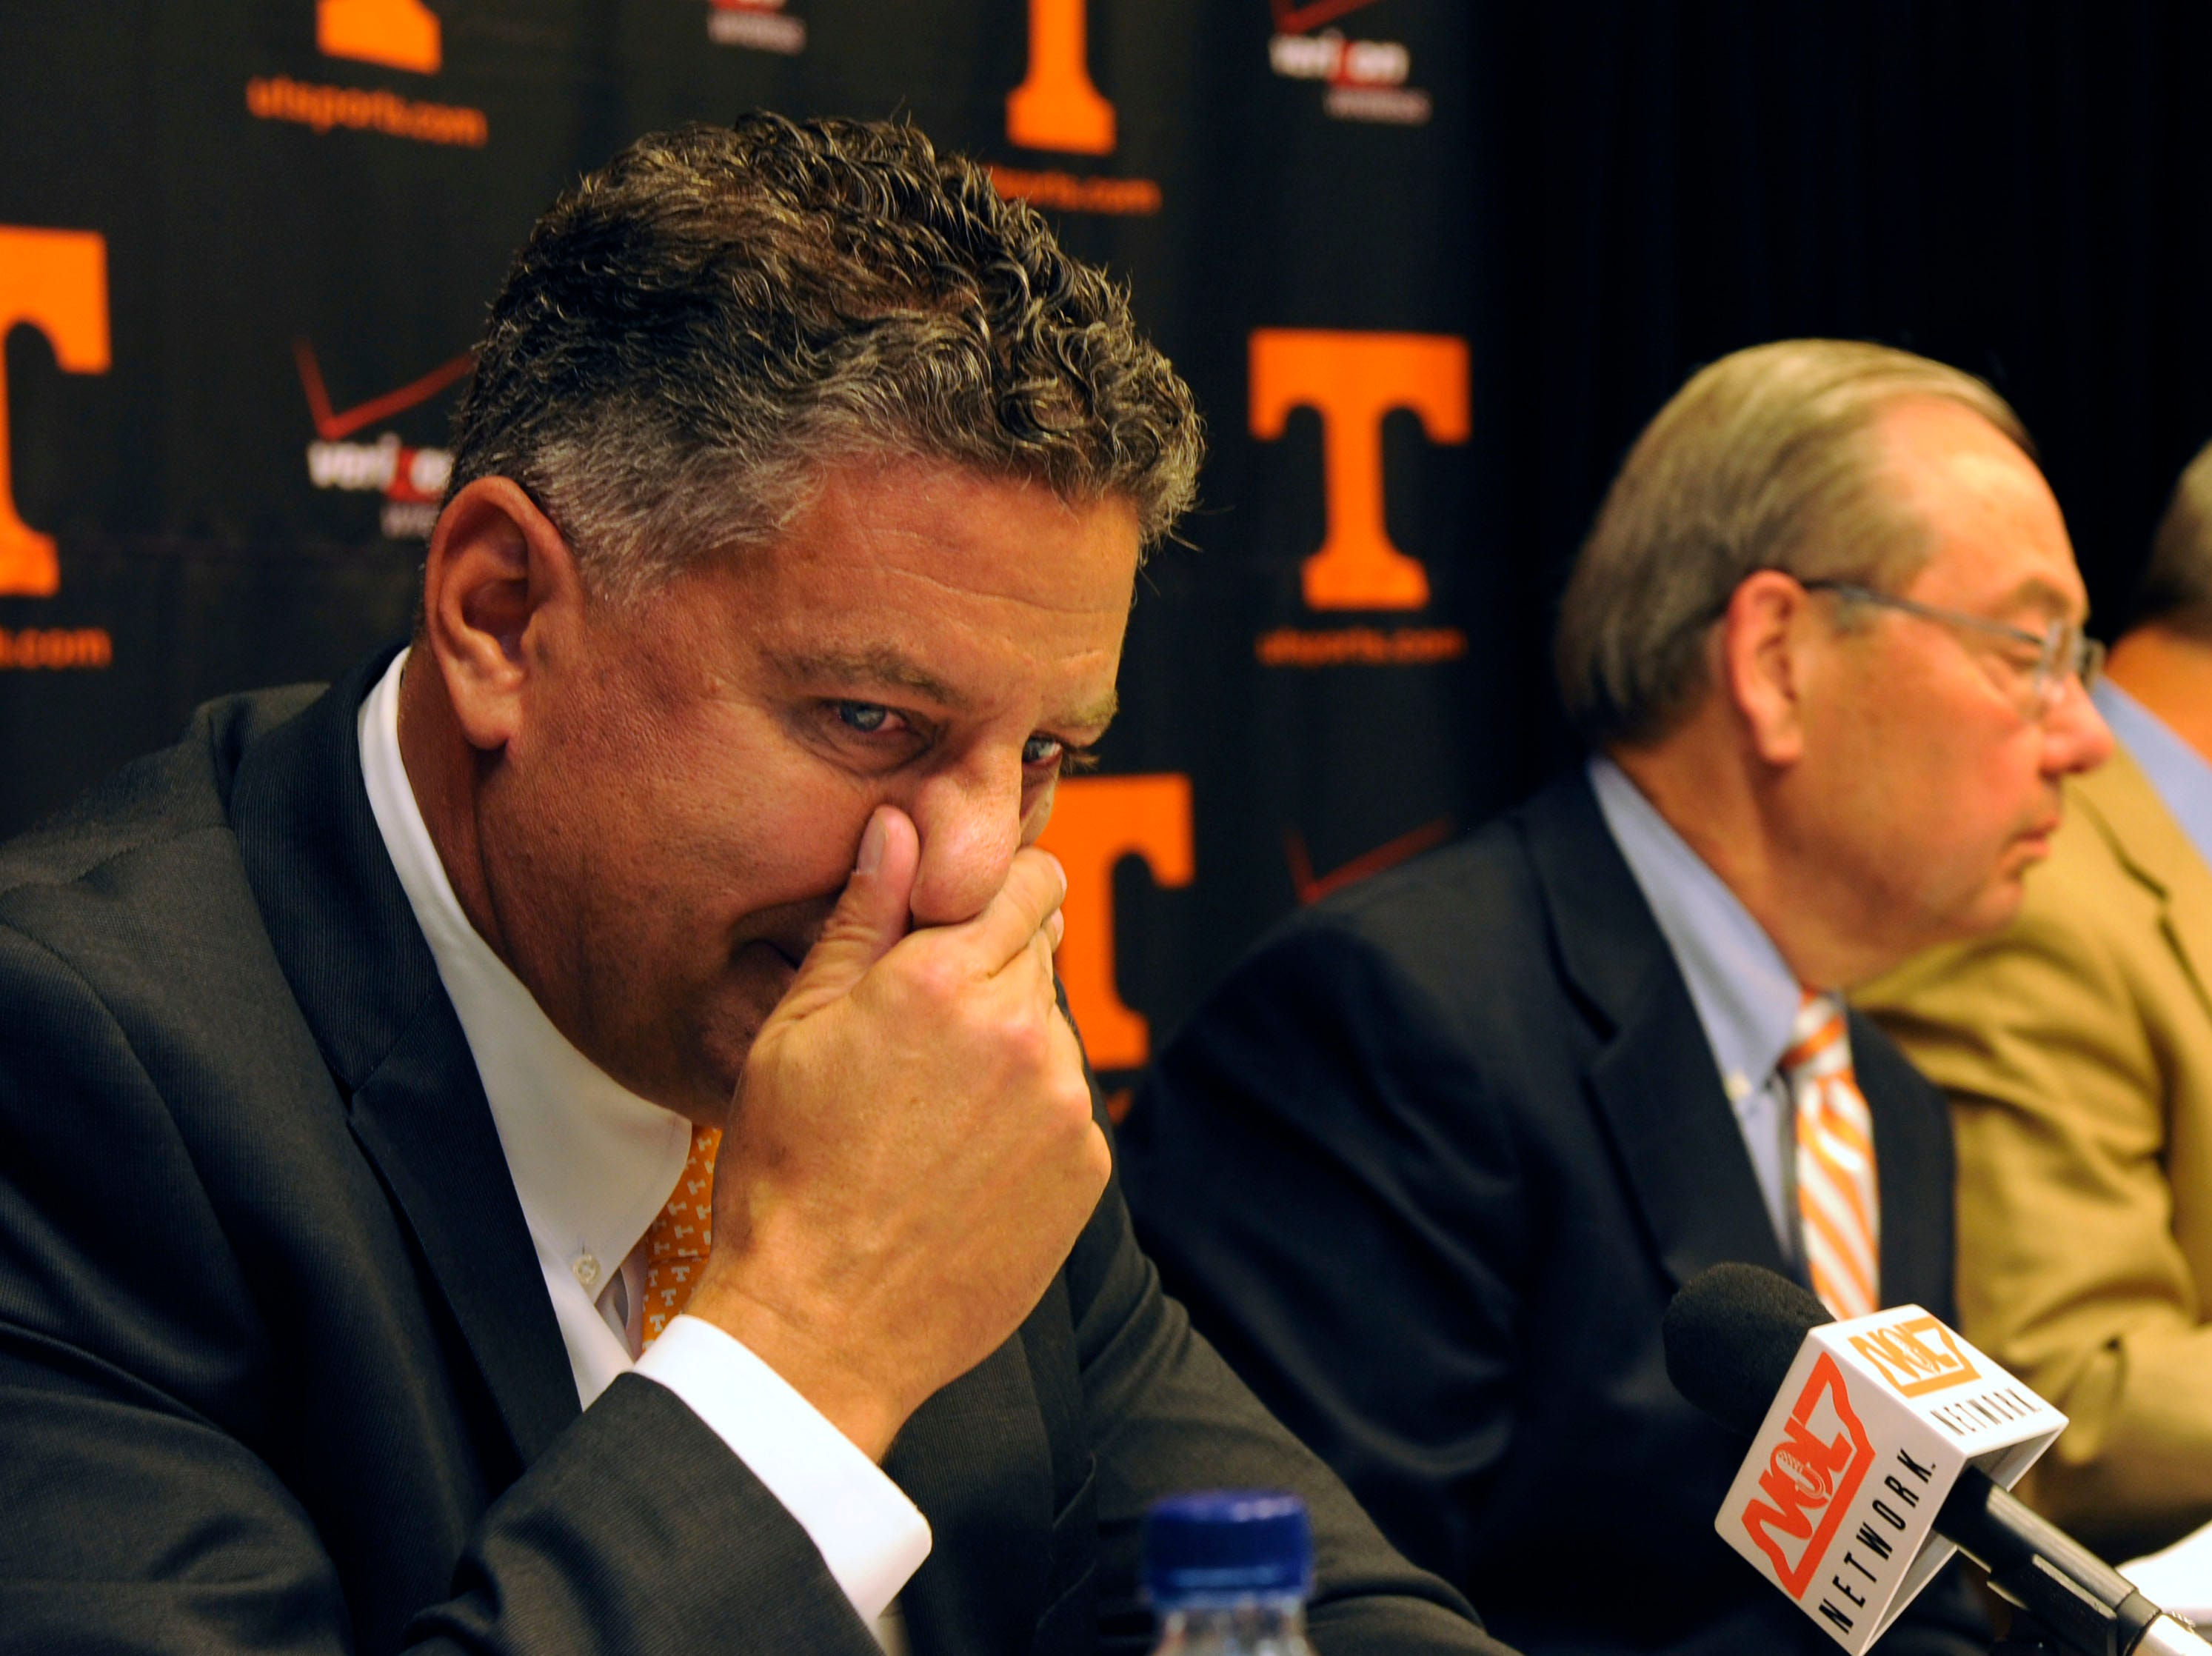 University of Tennessee Head MenÕs Basketball Coach Bruce Pearl expresses remorse for giving misleading information to the NCAA during an investigation in June of this year. The press conference Friday, Sep. 10, 2010 revealed that Pearl's compensation will be reduced by $1.5 million over the next five years. At right is Knoxville Chancellor Dr. Jimmy Cheek.